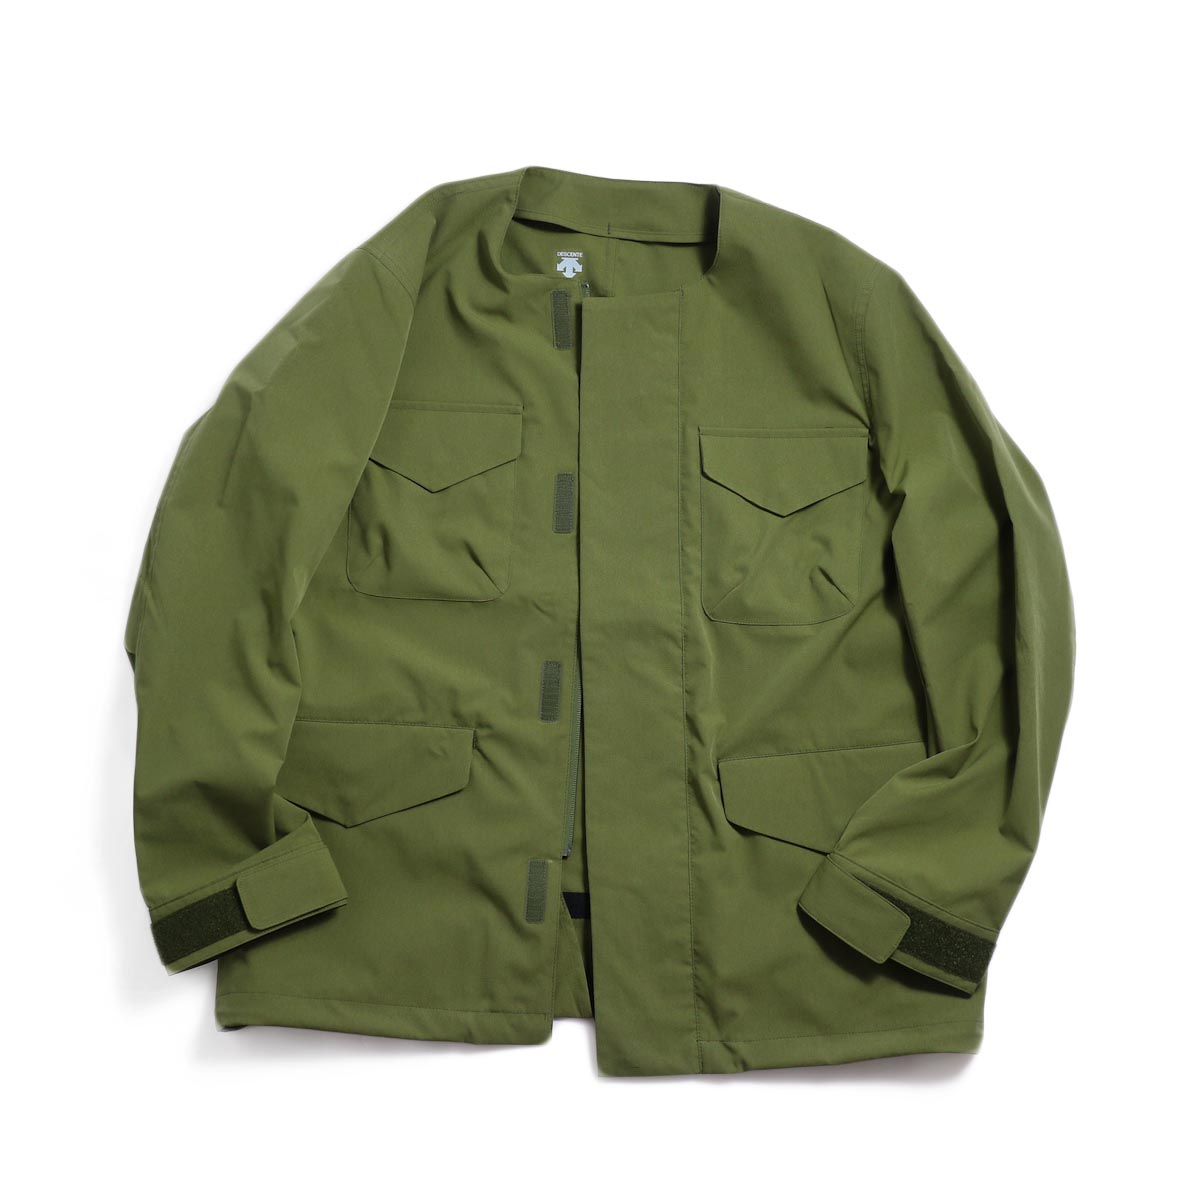 DESCENTE ddd / Utility Jacket -OLIVE